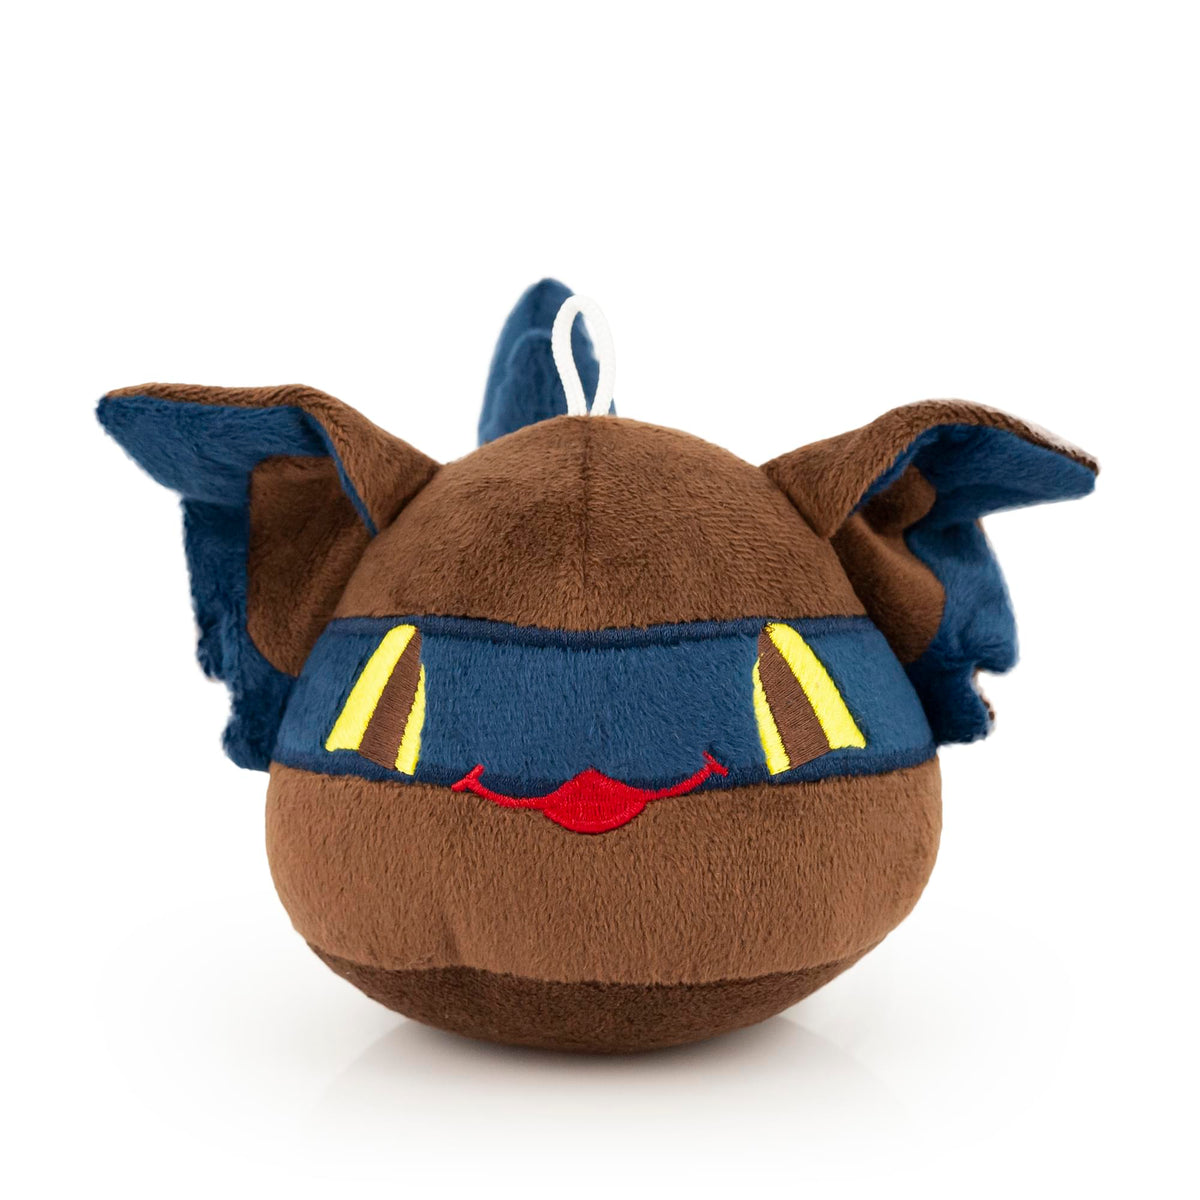 Slime Rancher Plush Toy Bean Bag Plushie | Hunter Slime, by Imaginary People